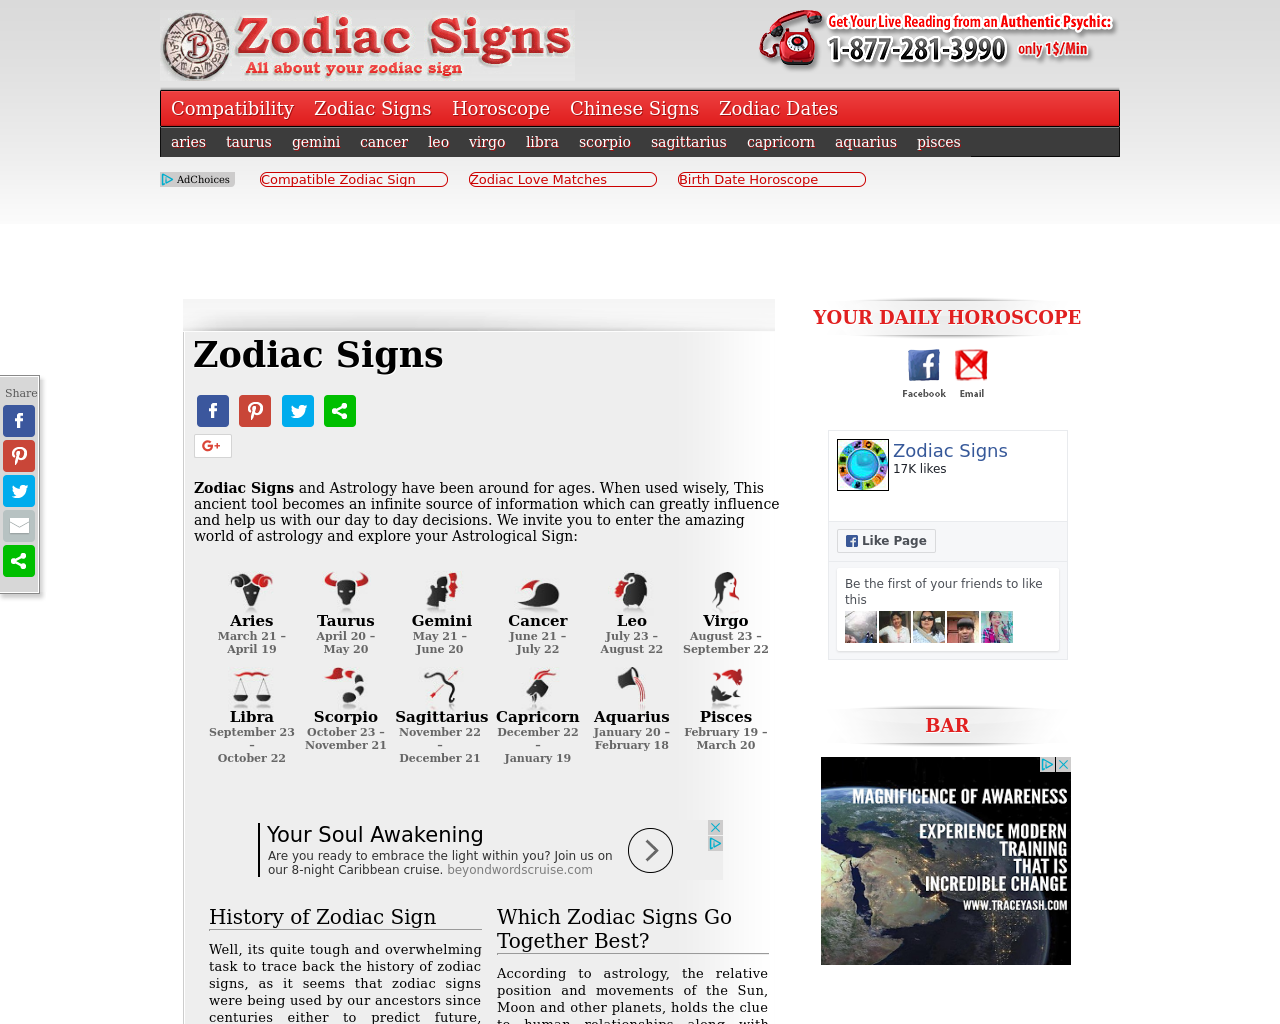 Zodiac-Signs-Advertising-Reviews-Pricing